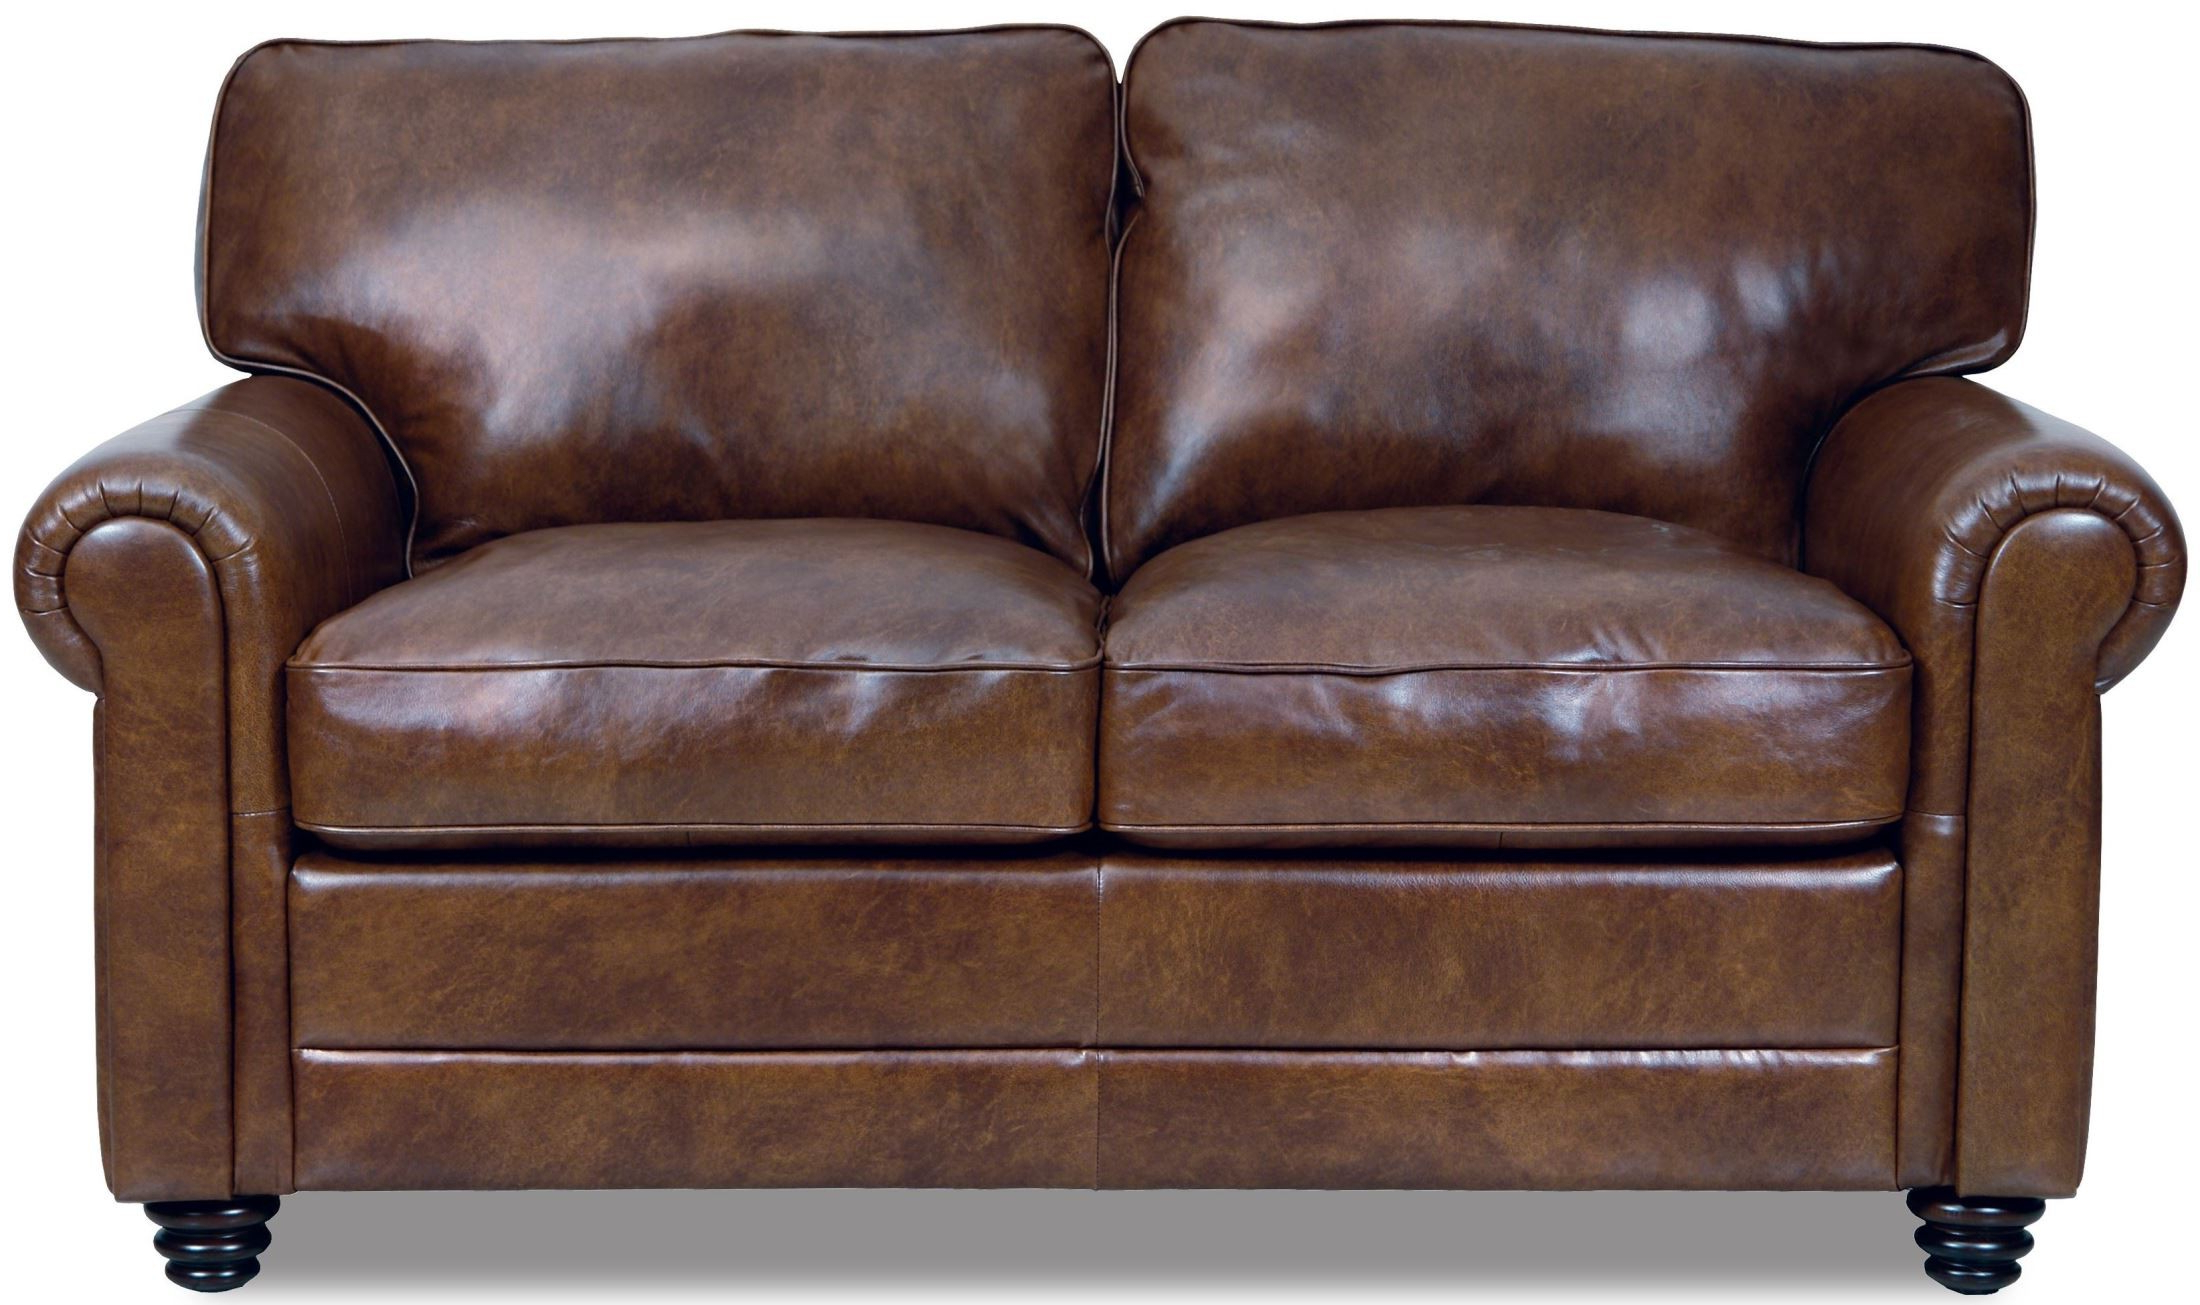 Andrew Leather Sofa Chairs Inside Most Up To Date Andrew Leather Loveseat From Luke Leather (Gallery 6 of 20)